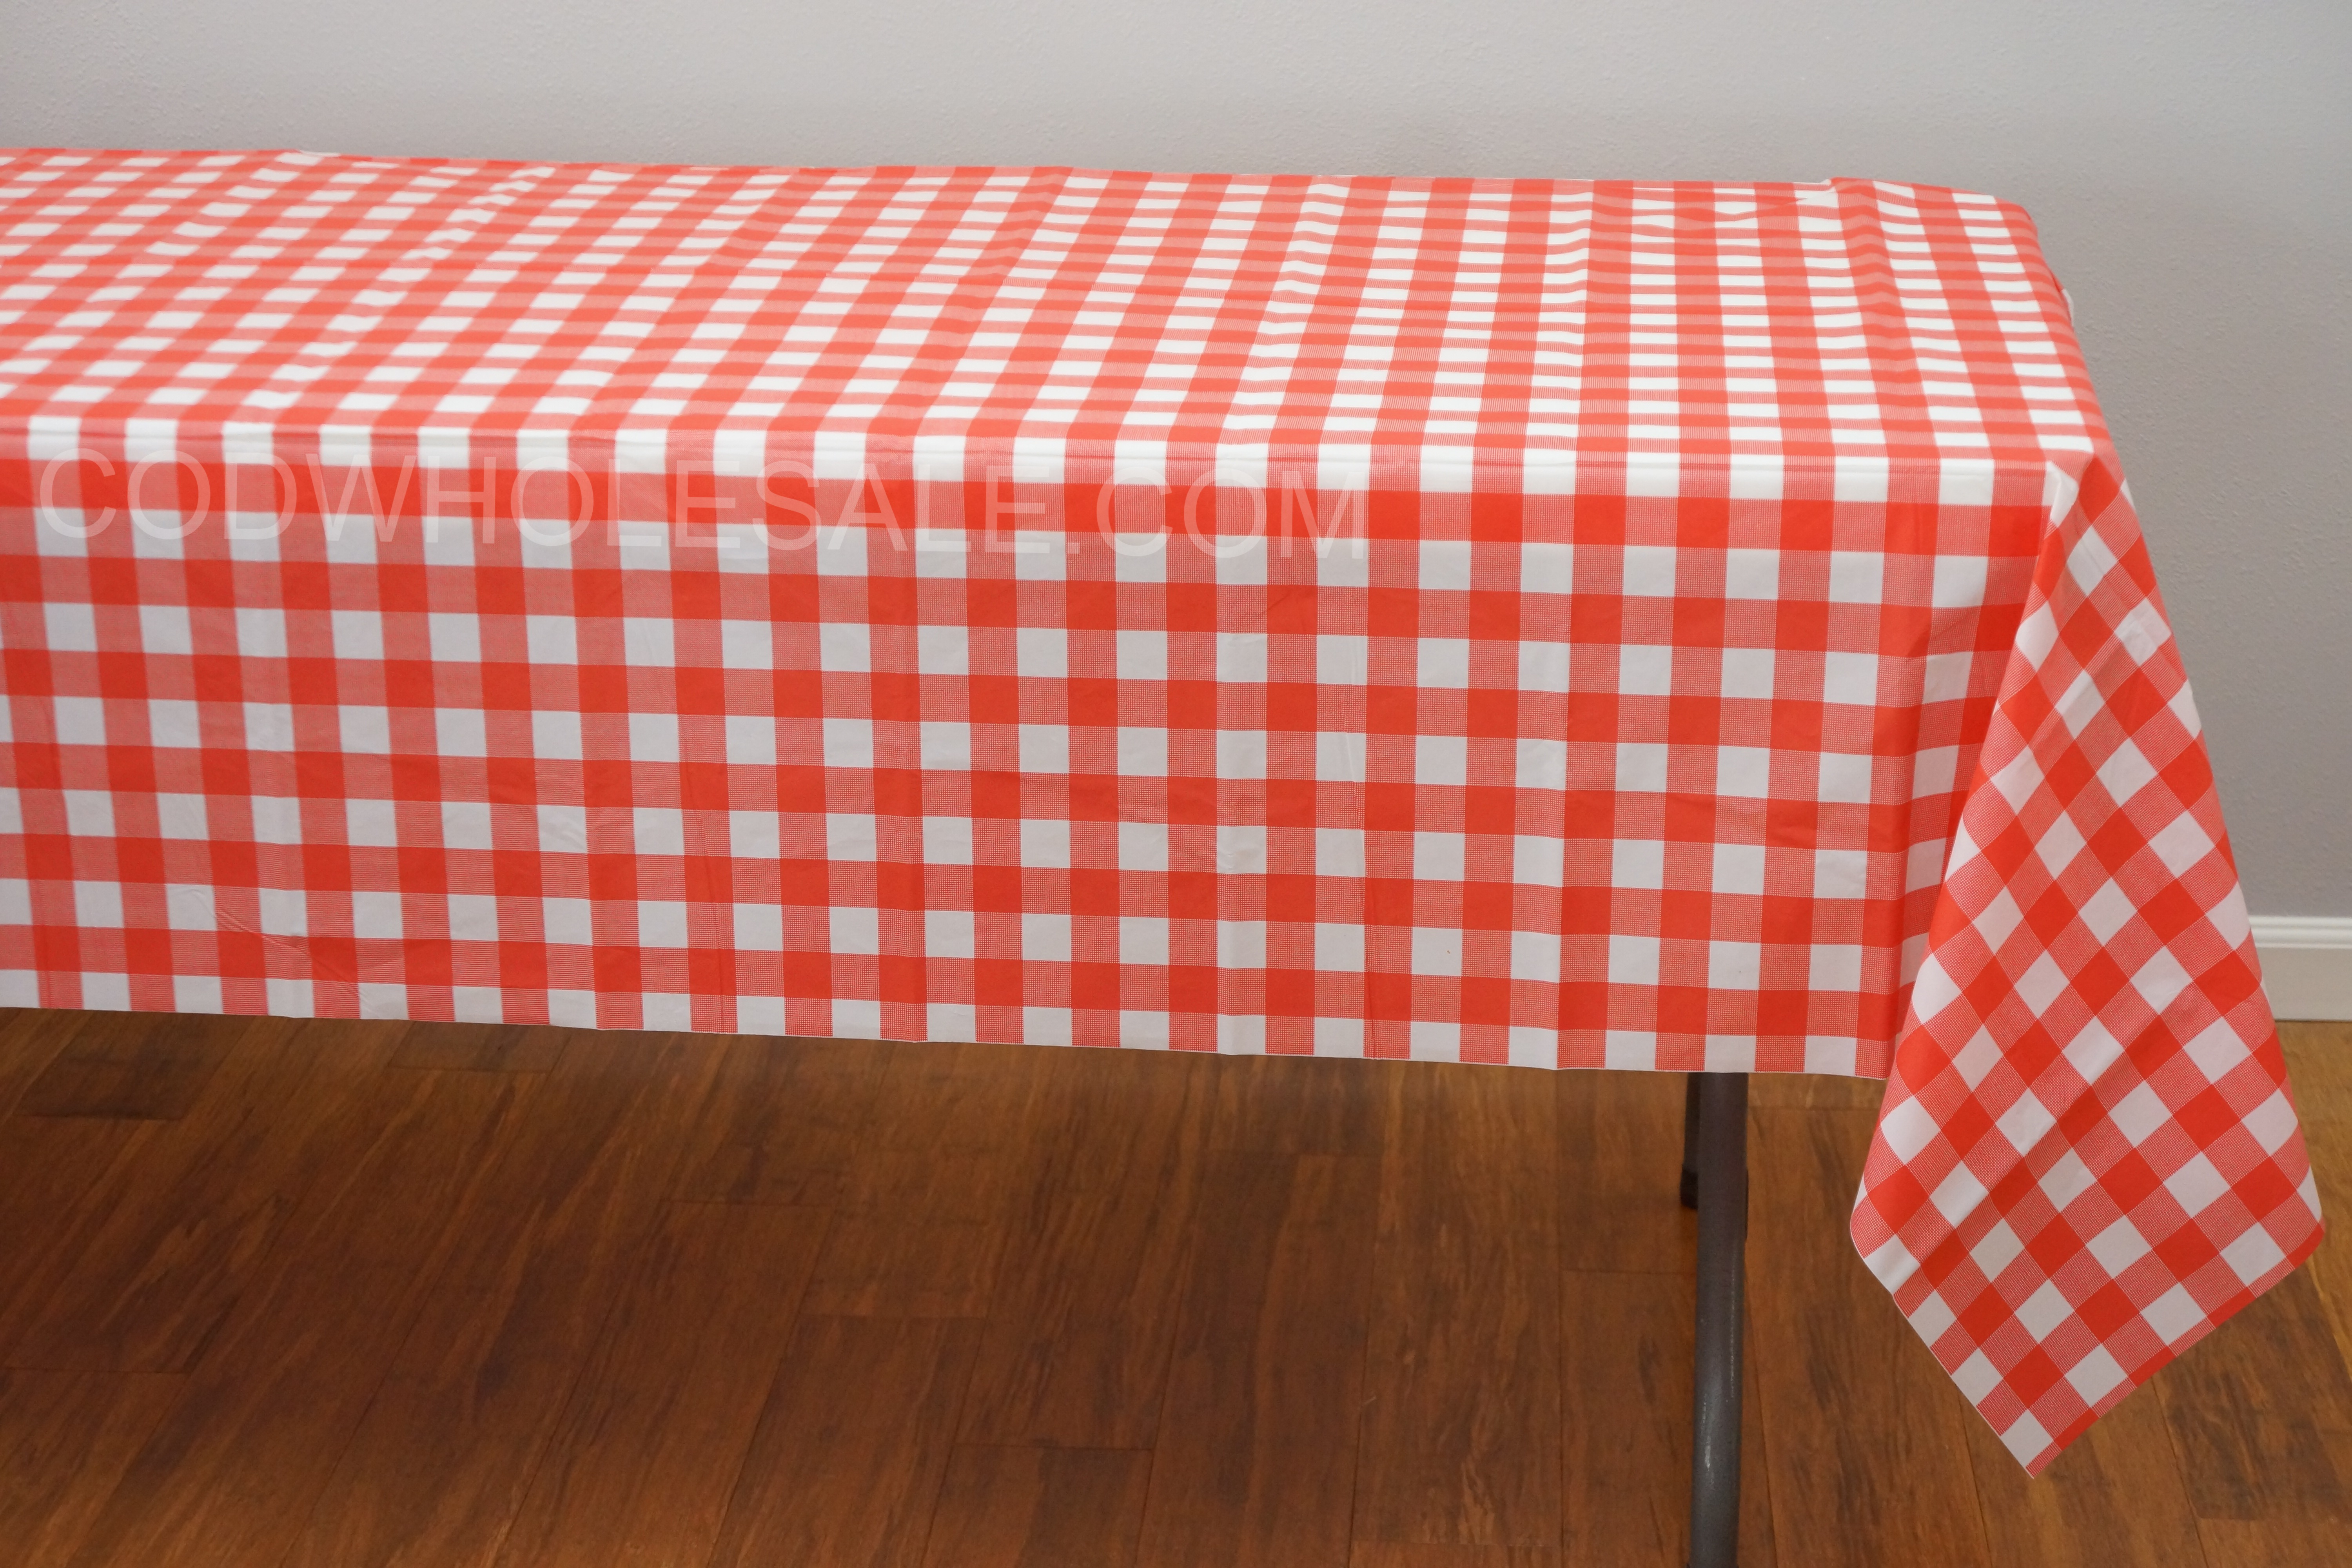 Red Rectangle Plaid Tablecloths